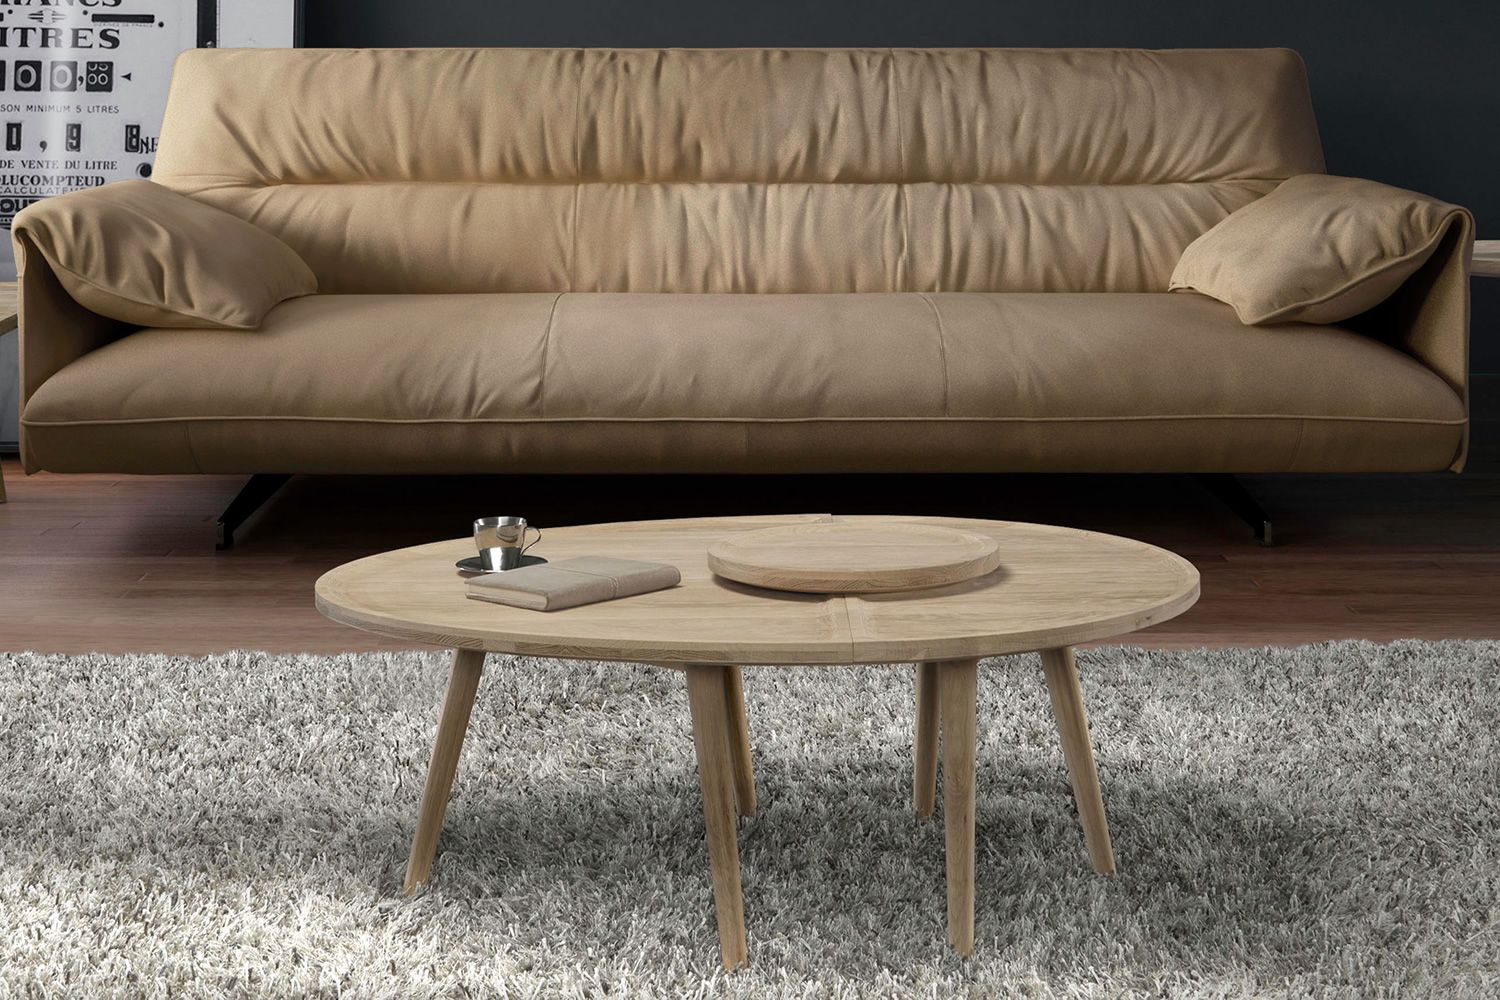 Colombo design wooden coffee table available in for Colombo design gallery